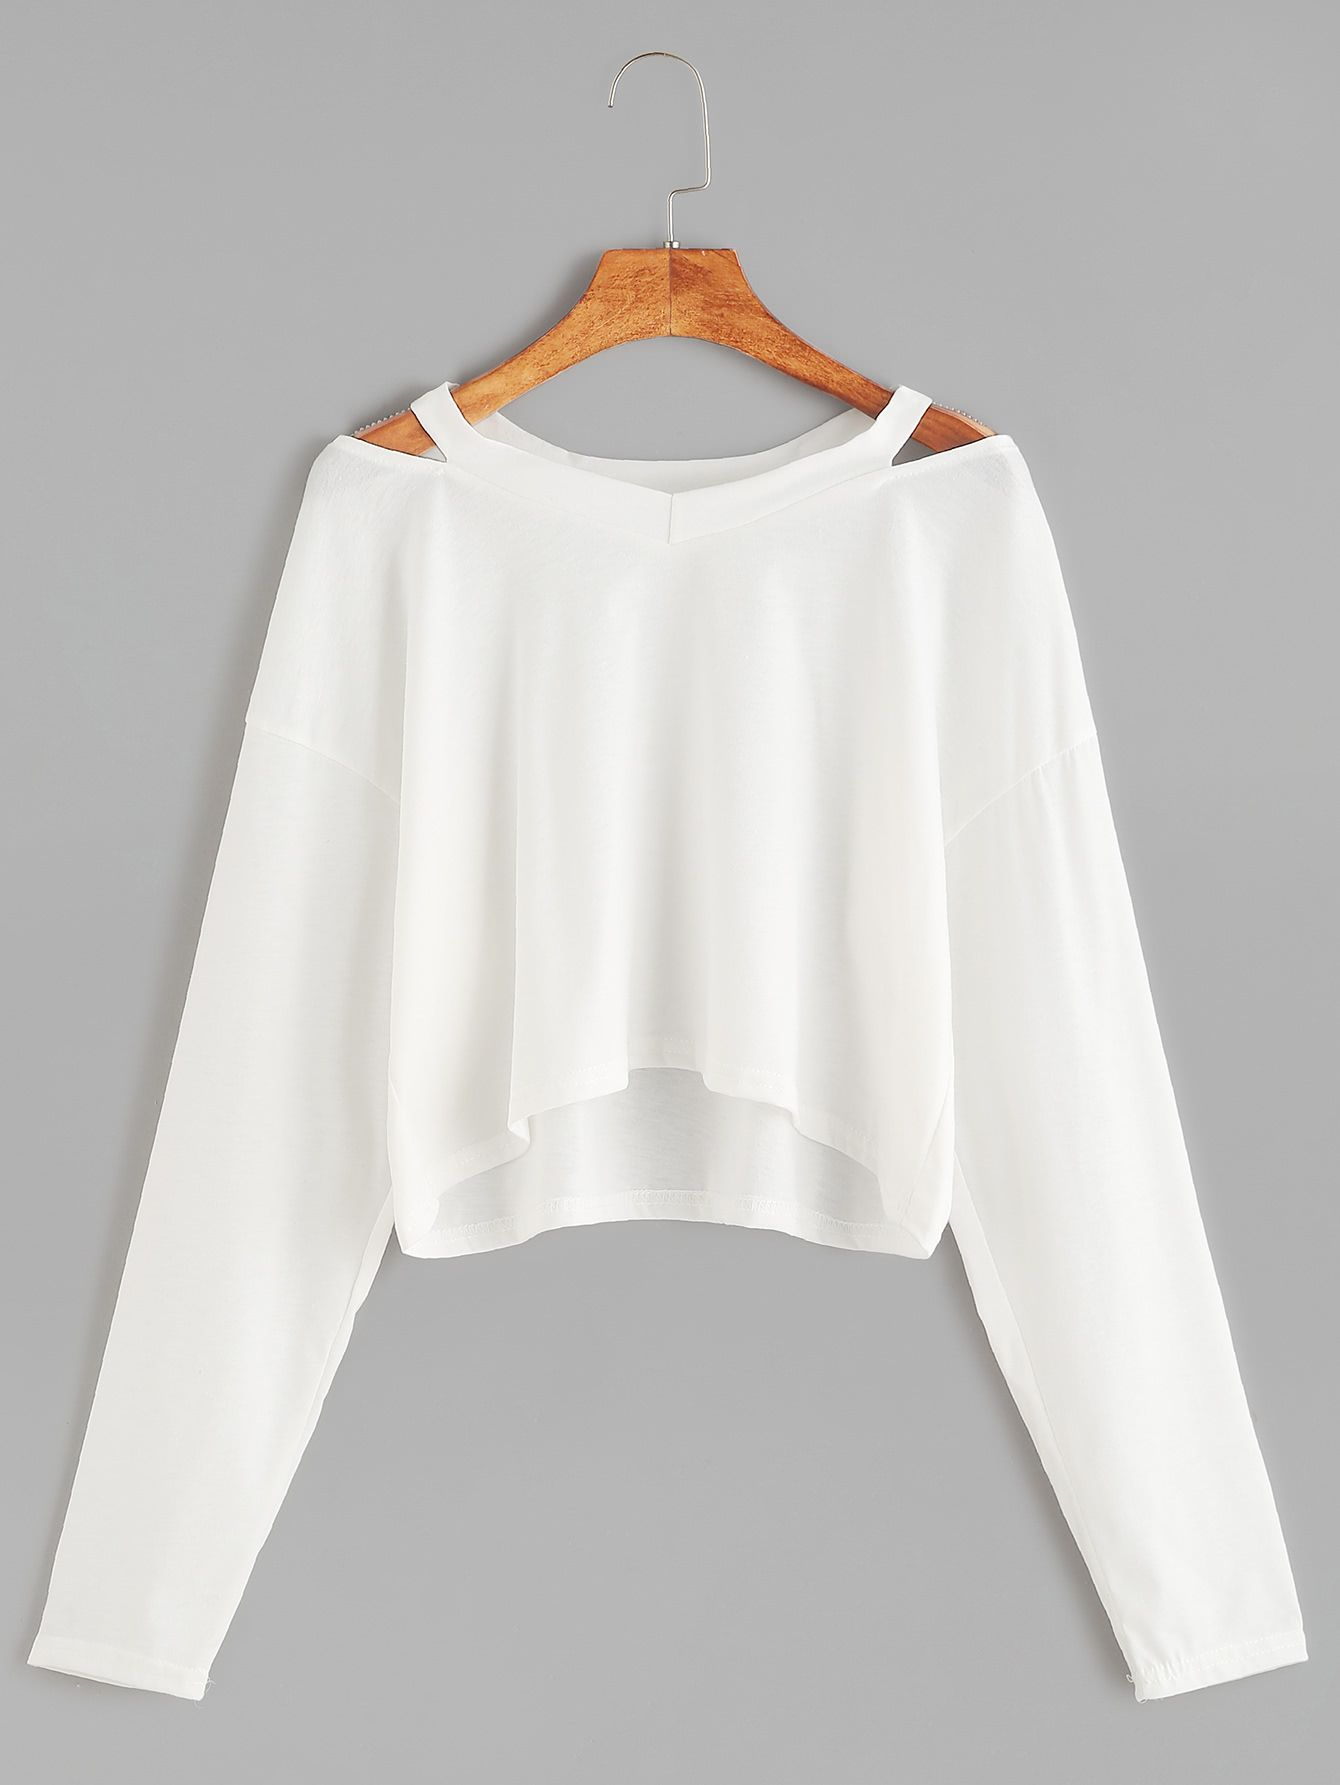 8f8a673c47 Shop White Cut Out Neck Crop T-shirt online. SheIn offers White Cut Out  Neck Crop T-shirt & more to fit your fashionable needs.